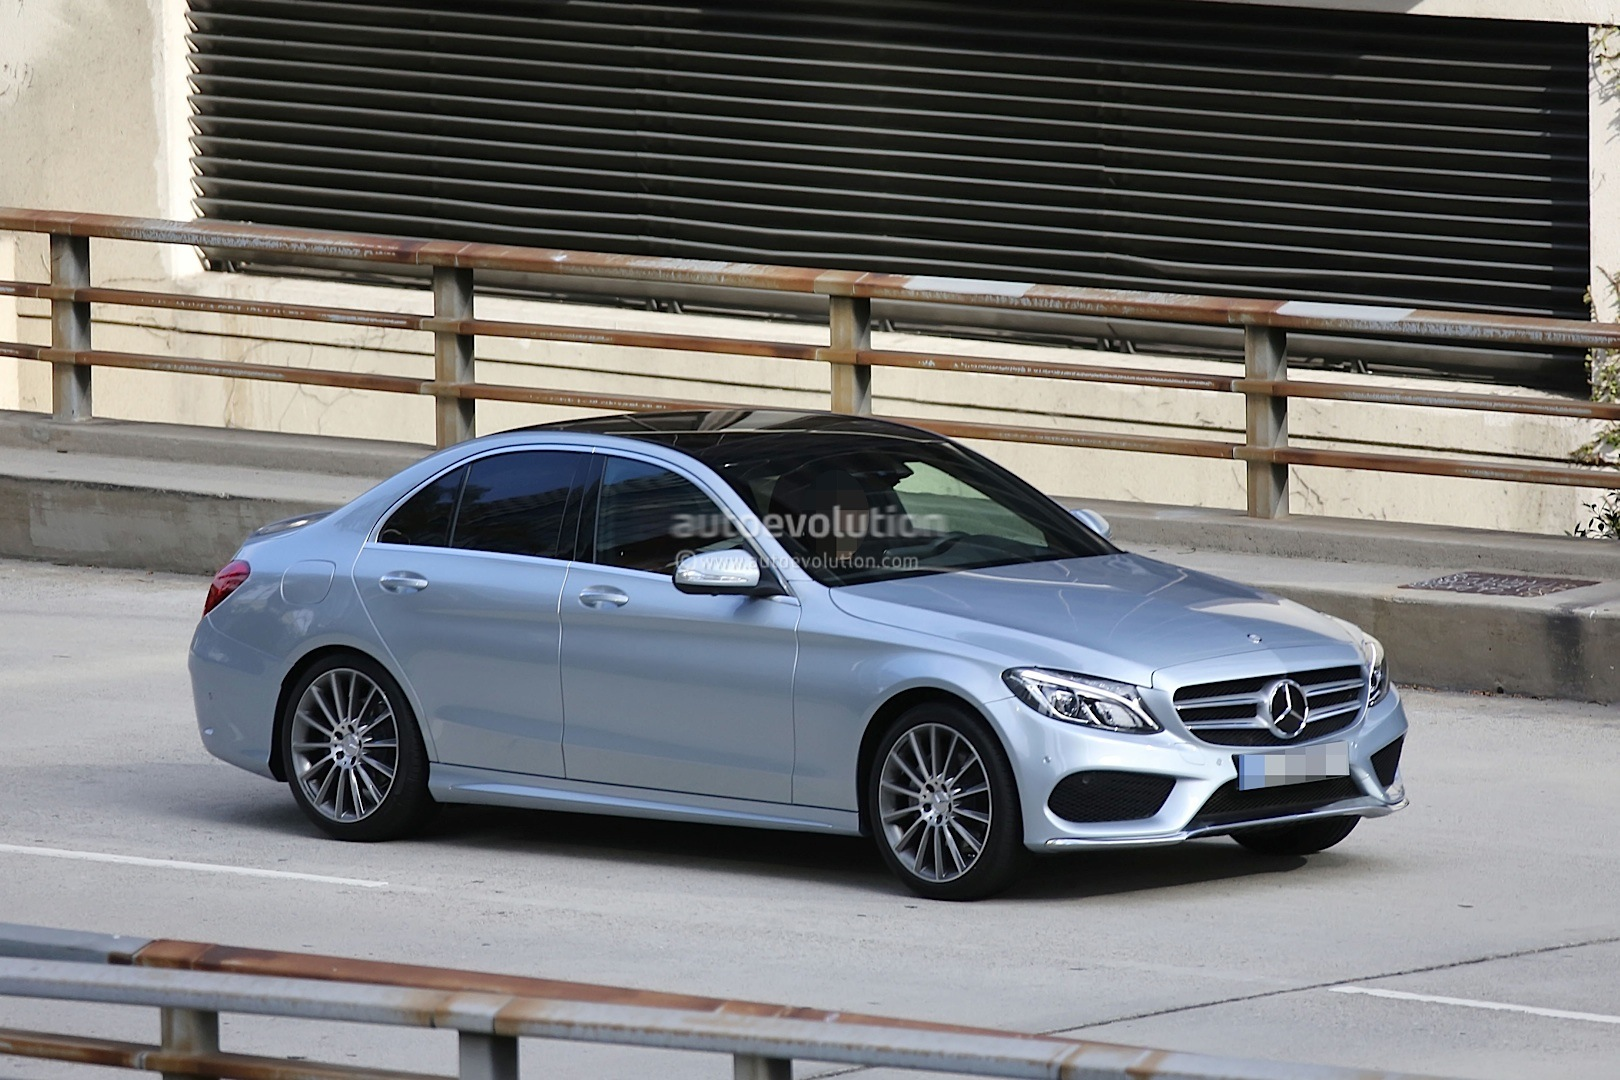 2015 mercedes benz c 180 w205 versus 2014 c 180 w204 for Mercedes benz in phoenix